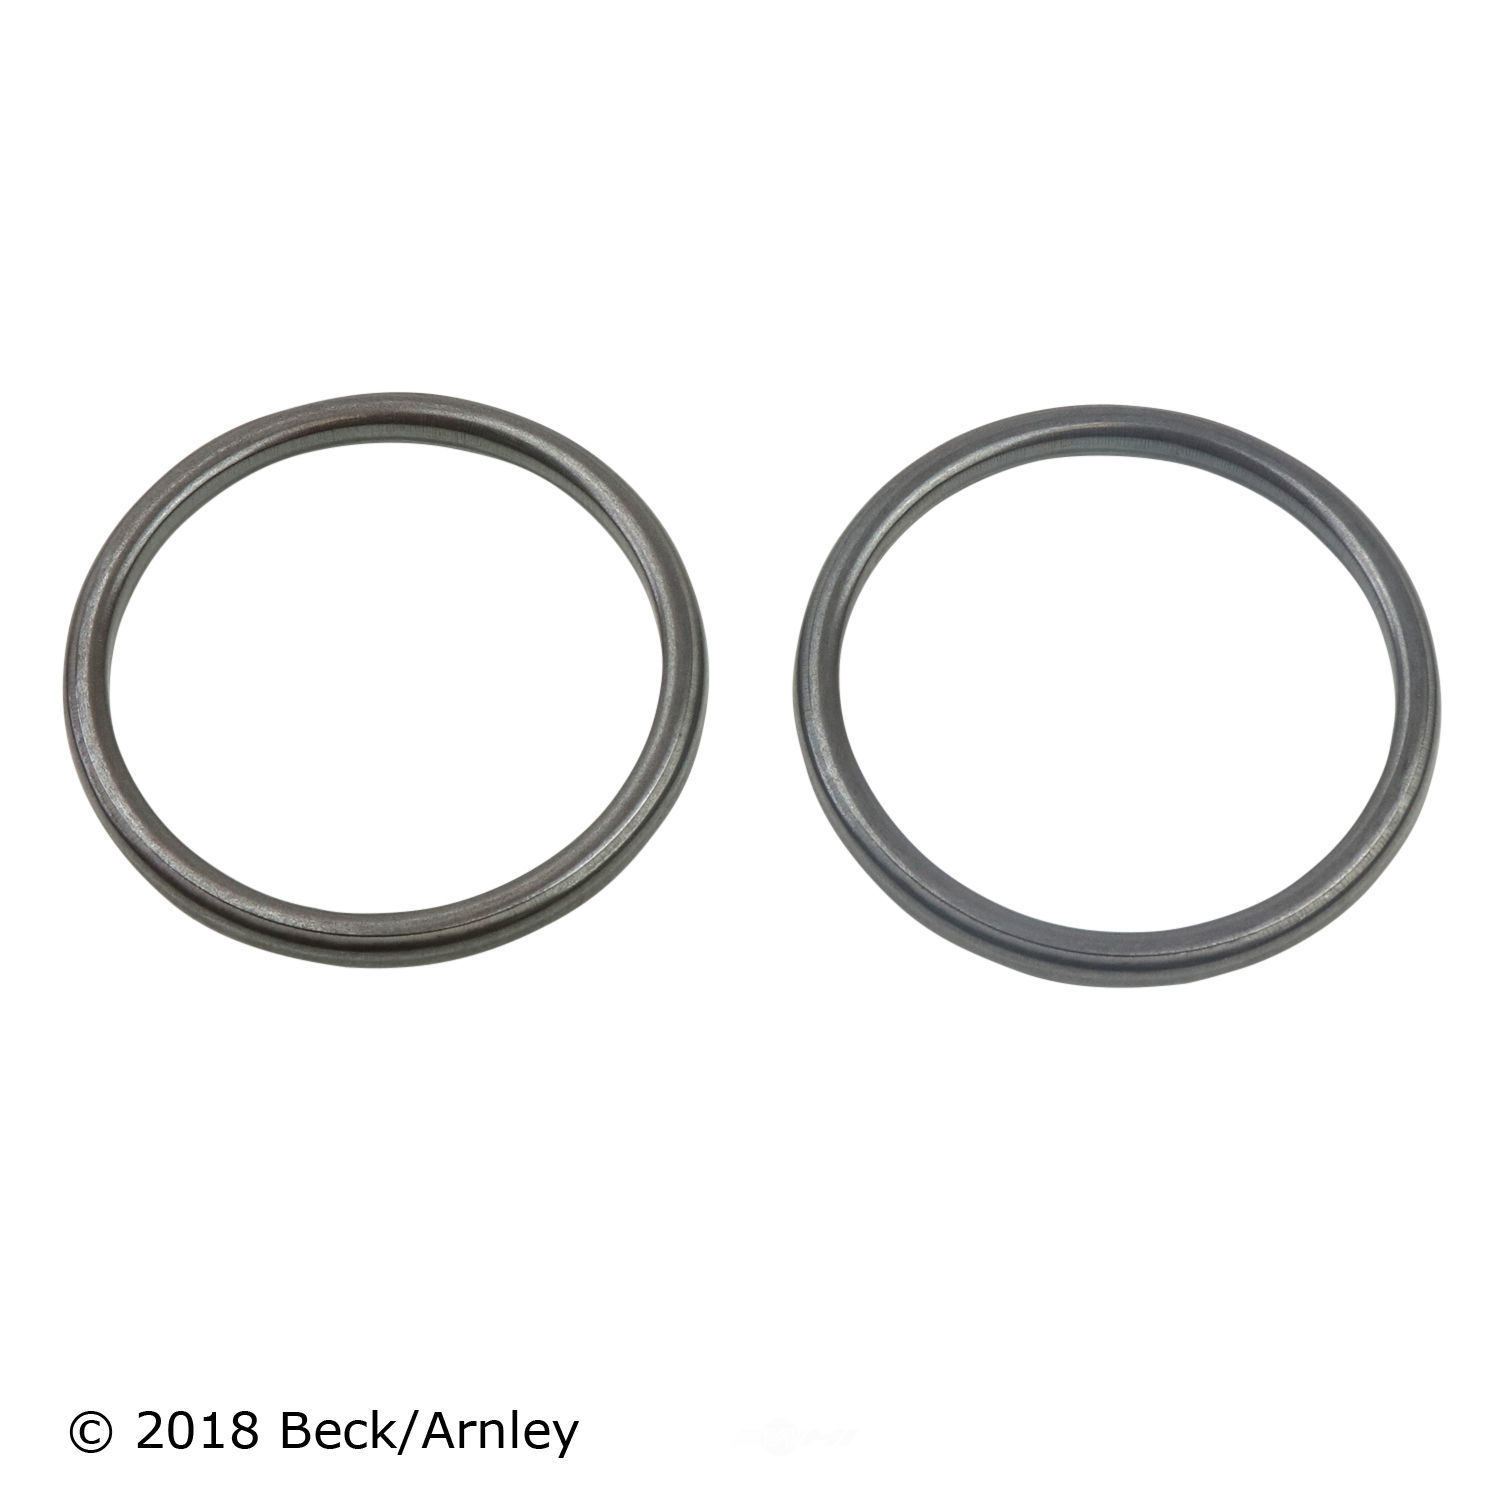 Exhaust Pipe To Manifold Gasket Fits Honda Accord Civic Cr V Beck Arn